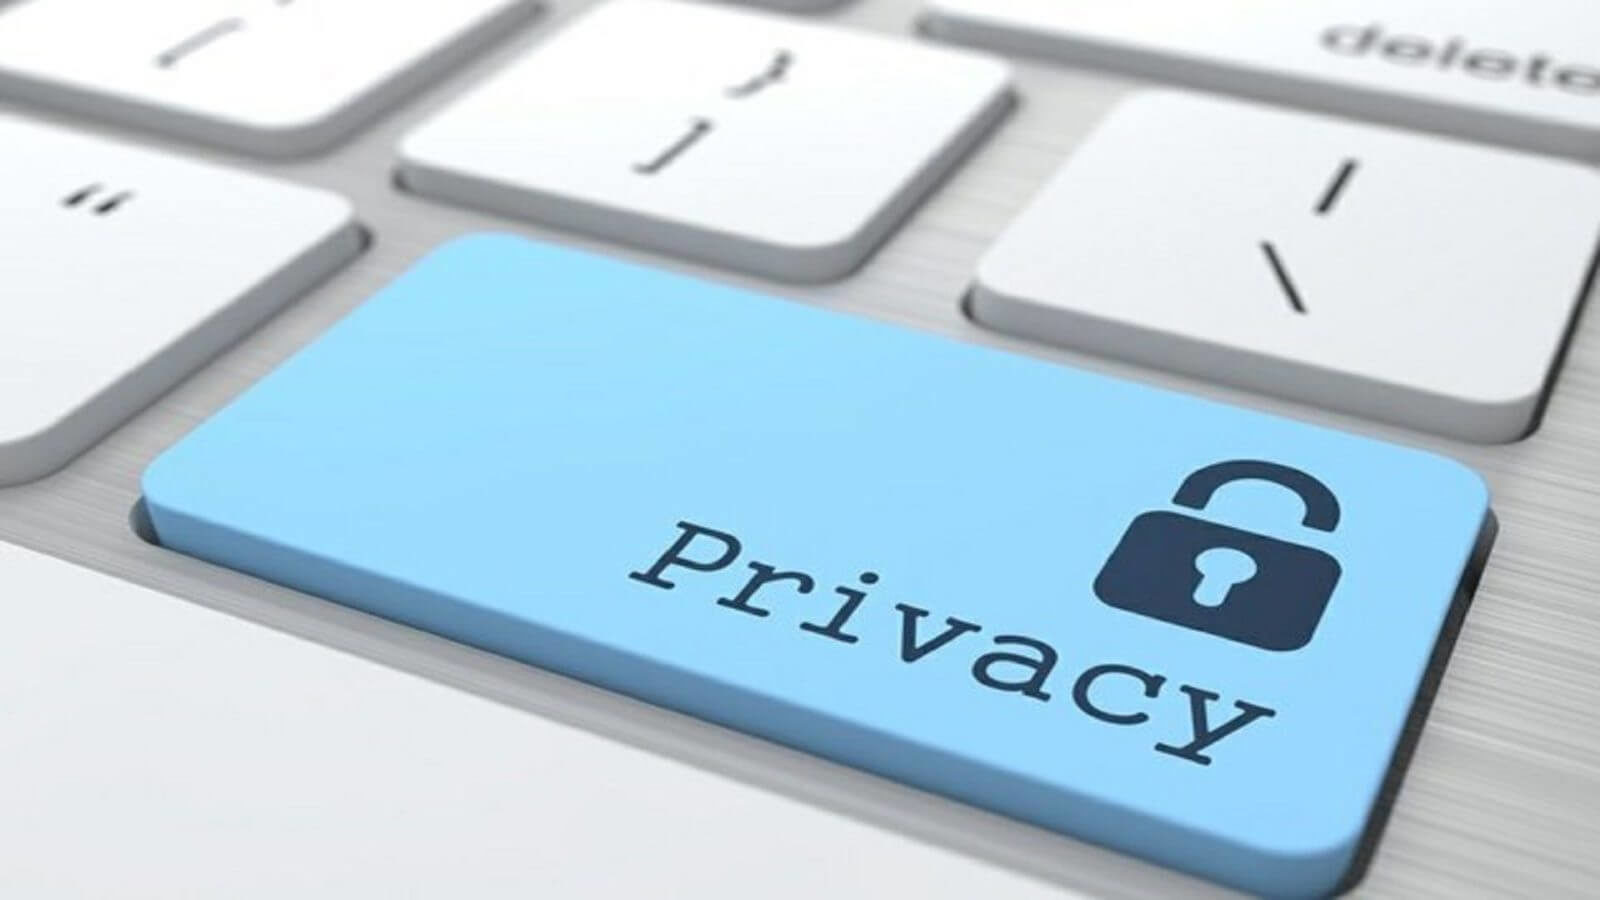 India amongst the bottom three non-EU countries in term of digital privacy